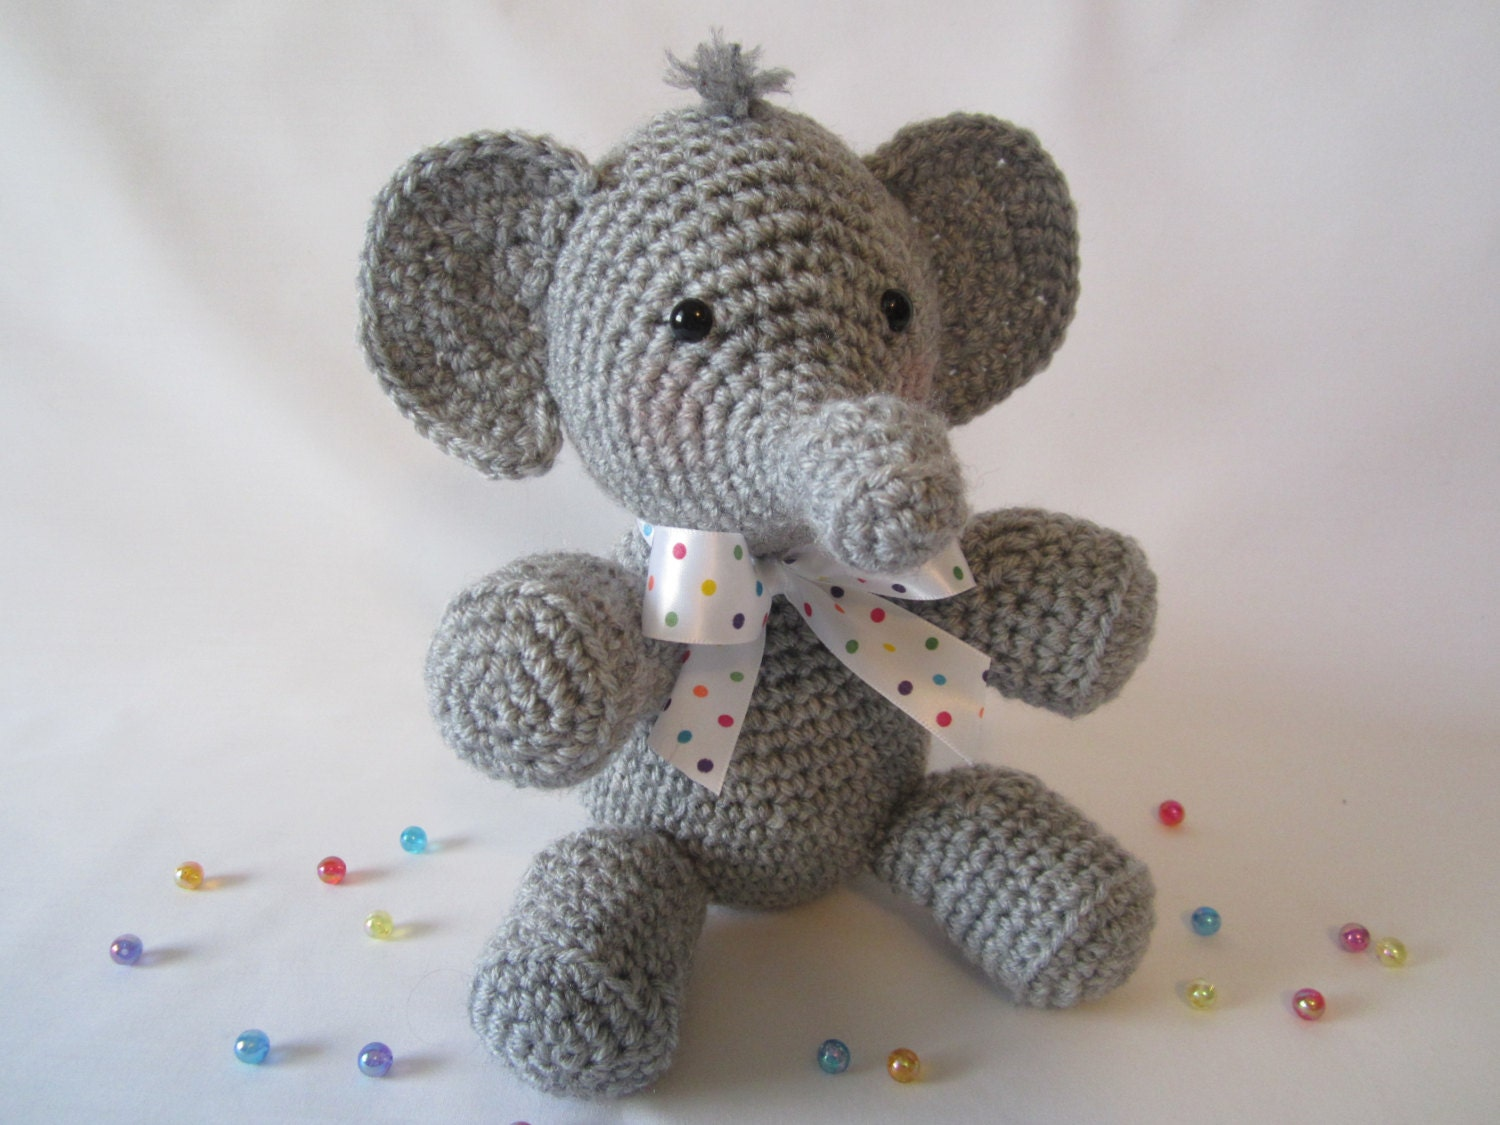 Crochet Elephant : Crochet Elephant Stuffed Elephant Stuffed Animal by CROriginals